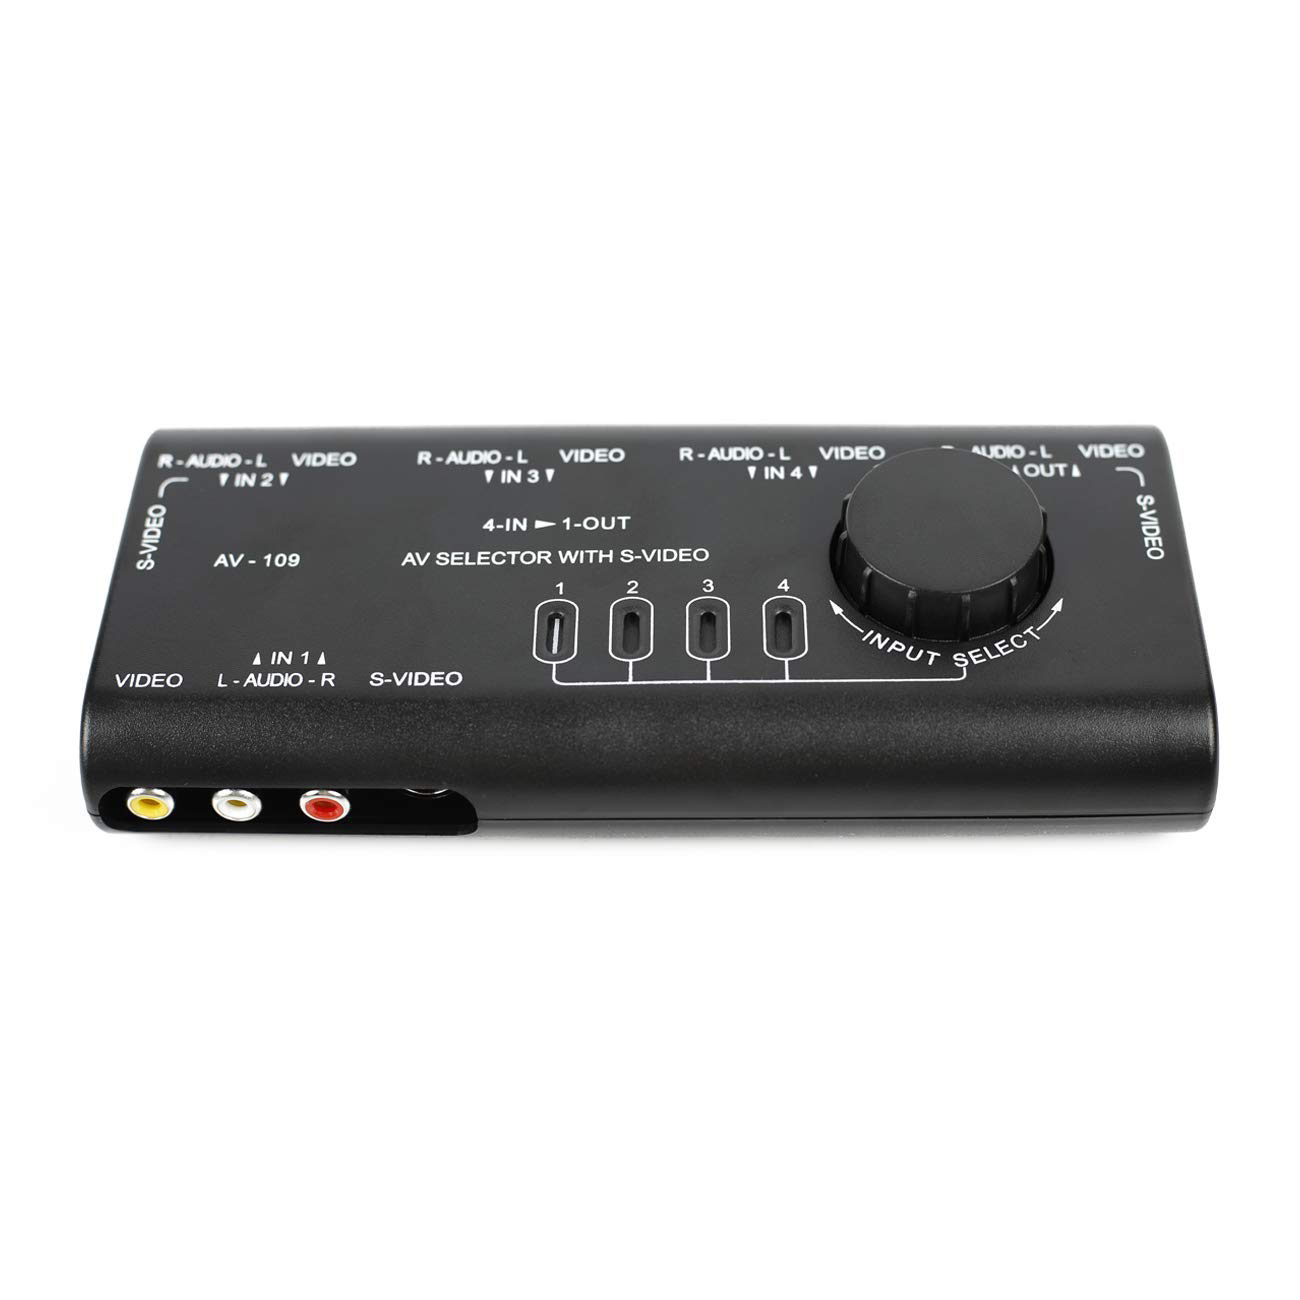 TTKK Practical AV Audio Video Signal Switcher 4 In 1 Out 4 Ways 3 RCA Switch Box Spiltter For HDTV LCD DVD STB Game Consoles A